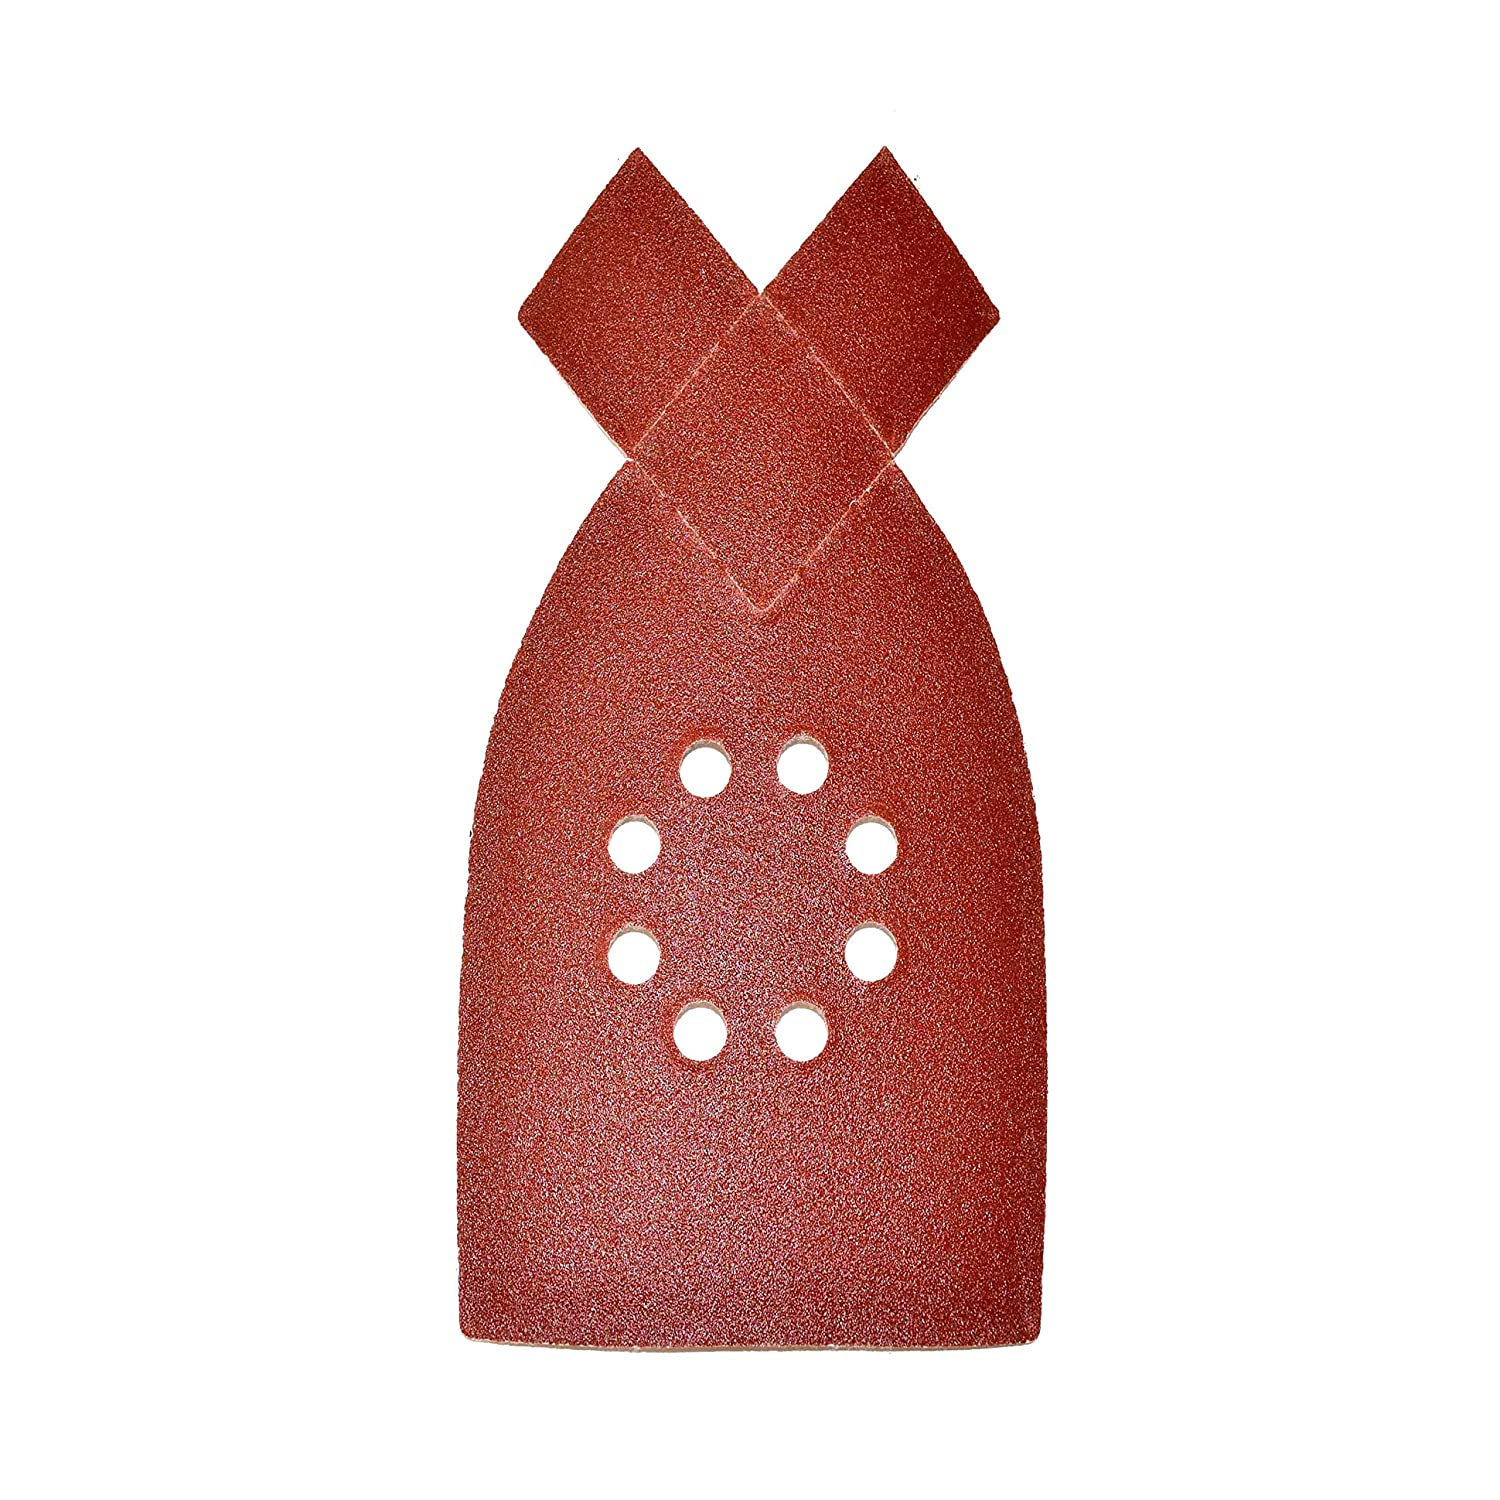 ALEKO 14SP09H 5 Pieces 150 Grit Mouse Sandpaper Sheets With 8 Holes 8 Inches